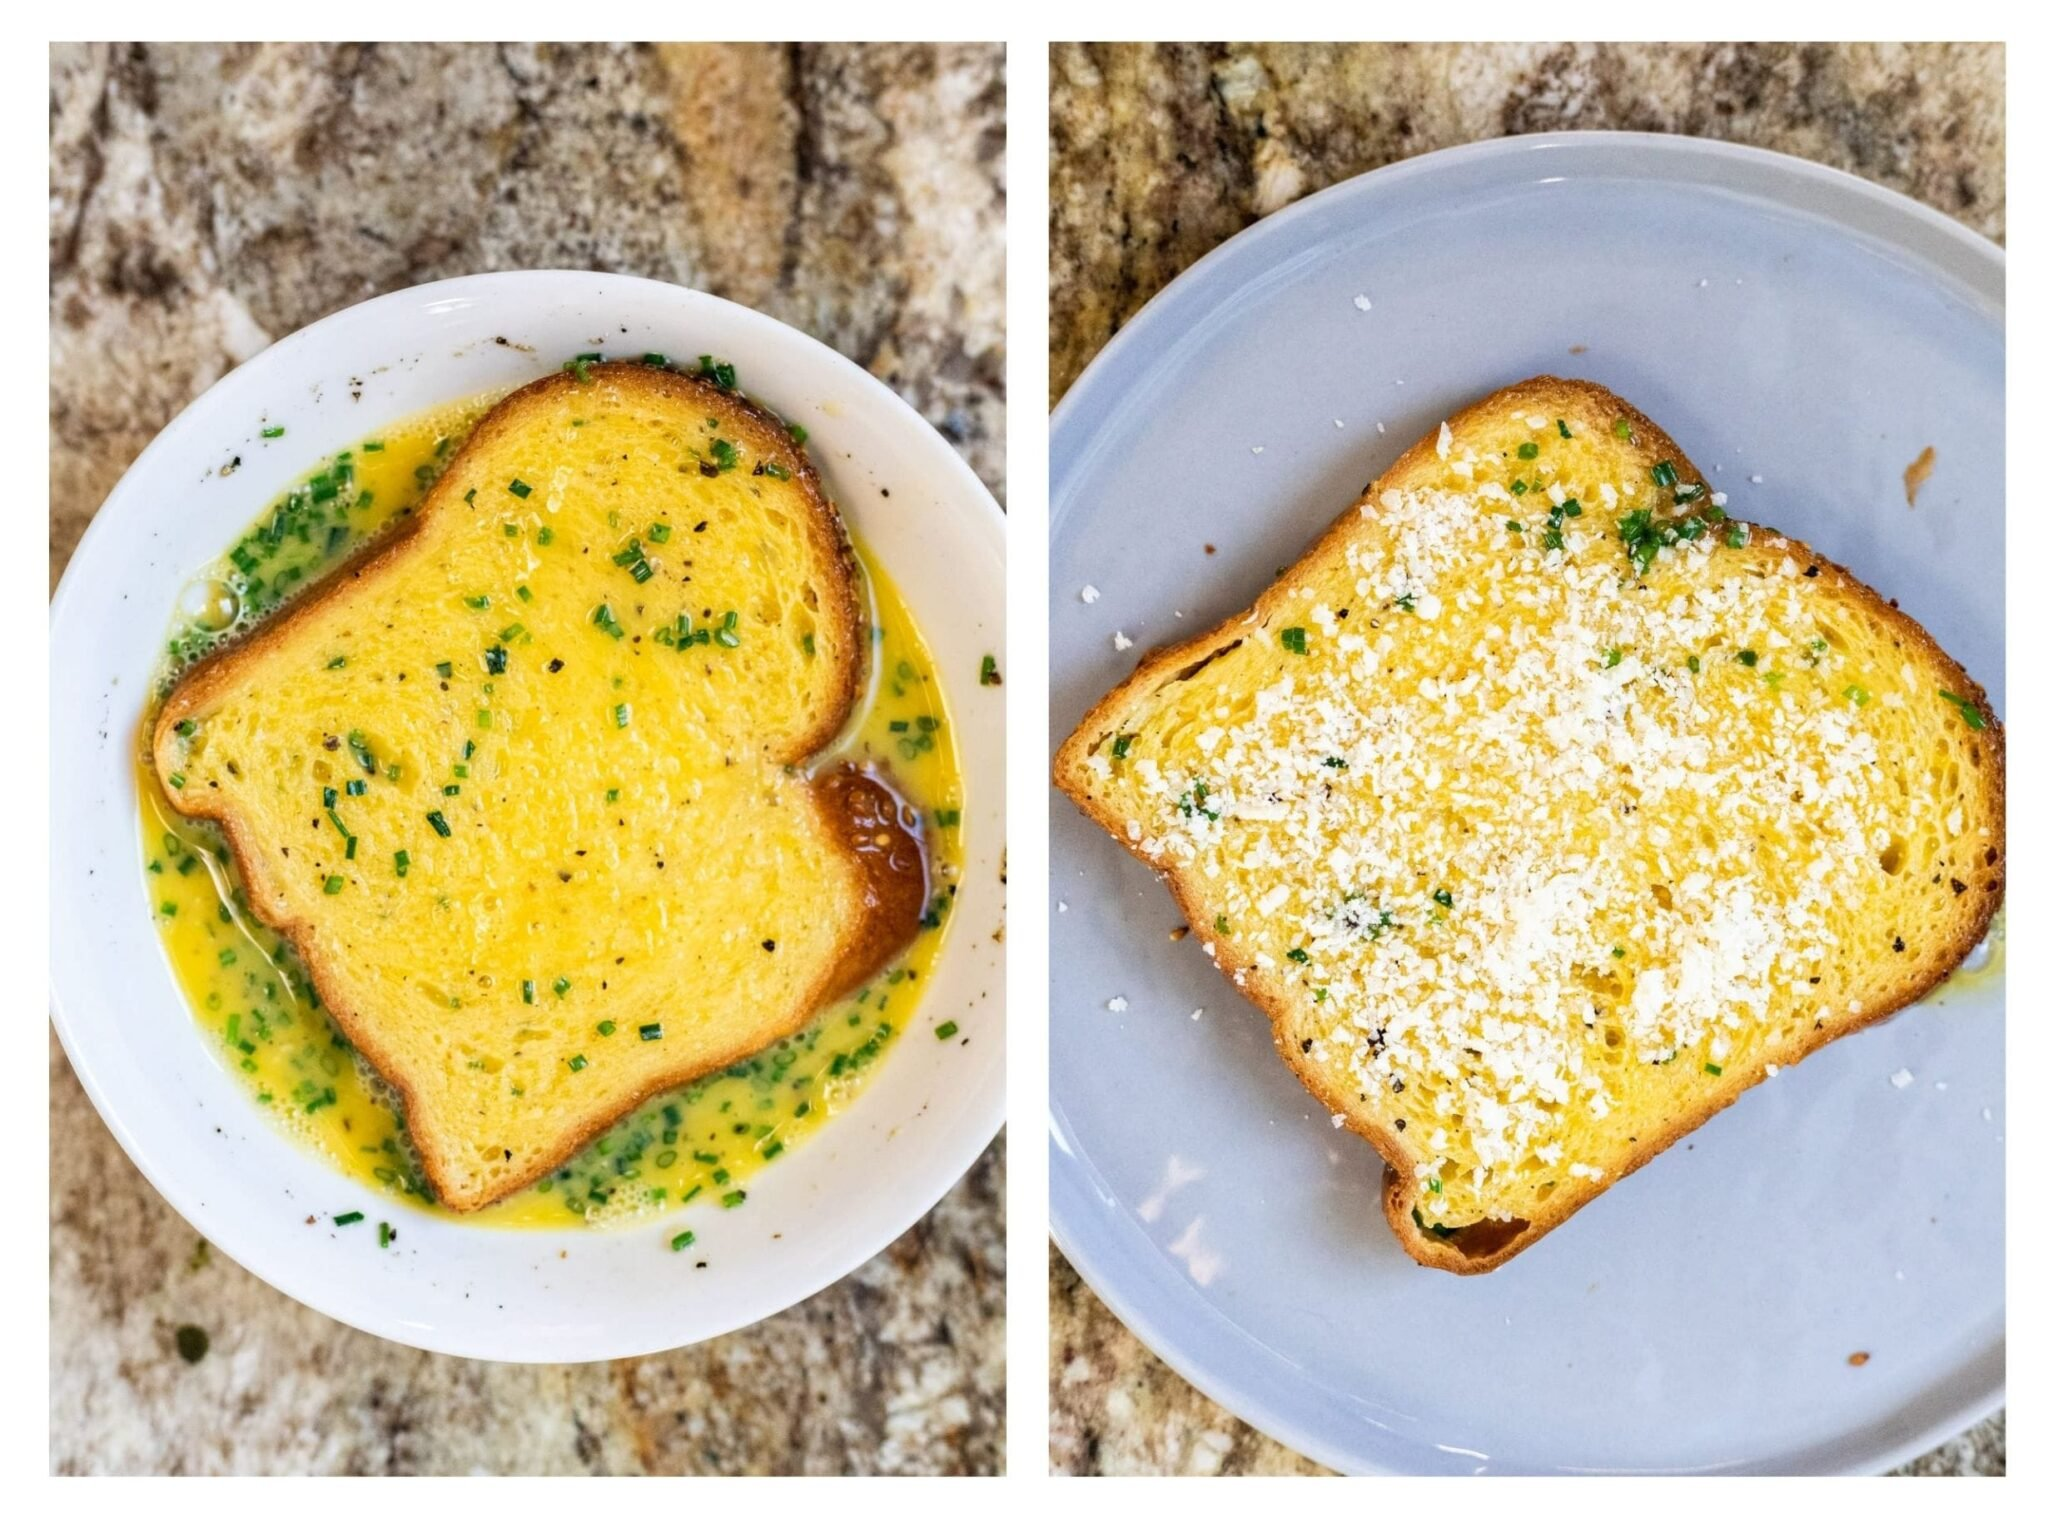 A photo collage of coating bread with egg mixture and topping with parmesan cheese.